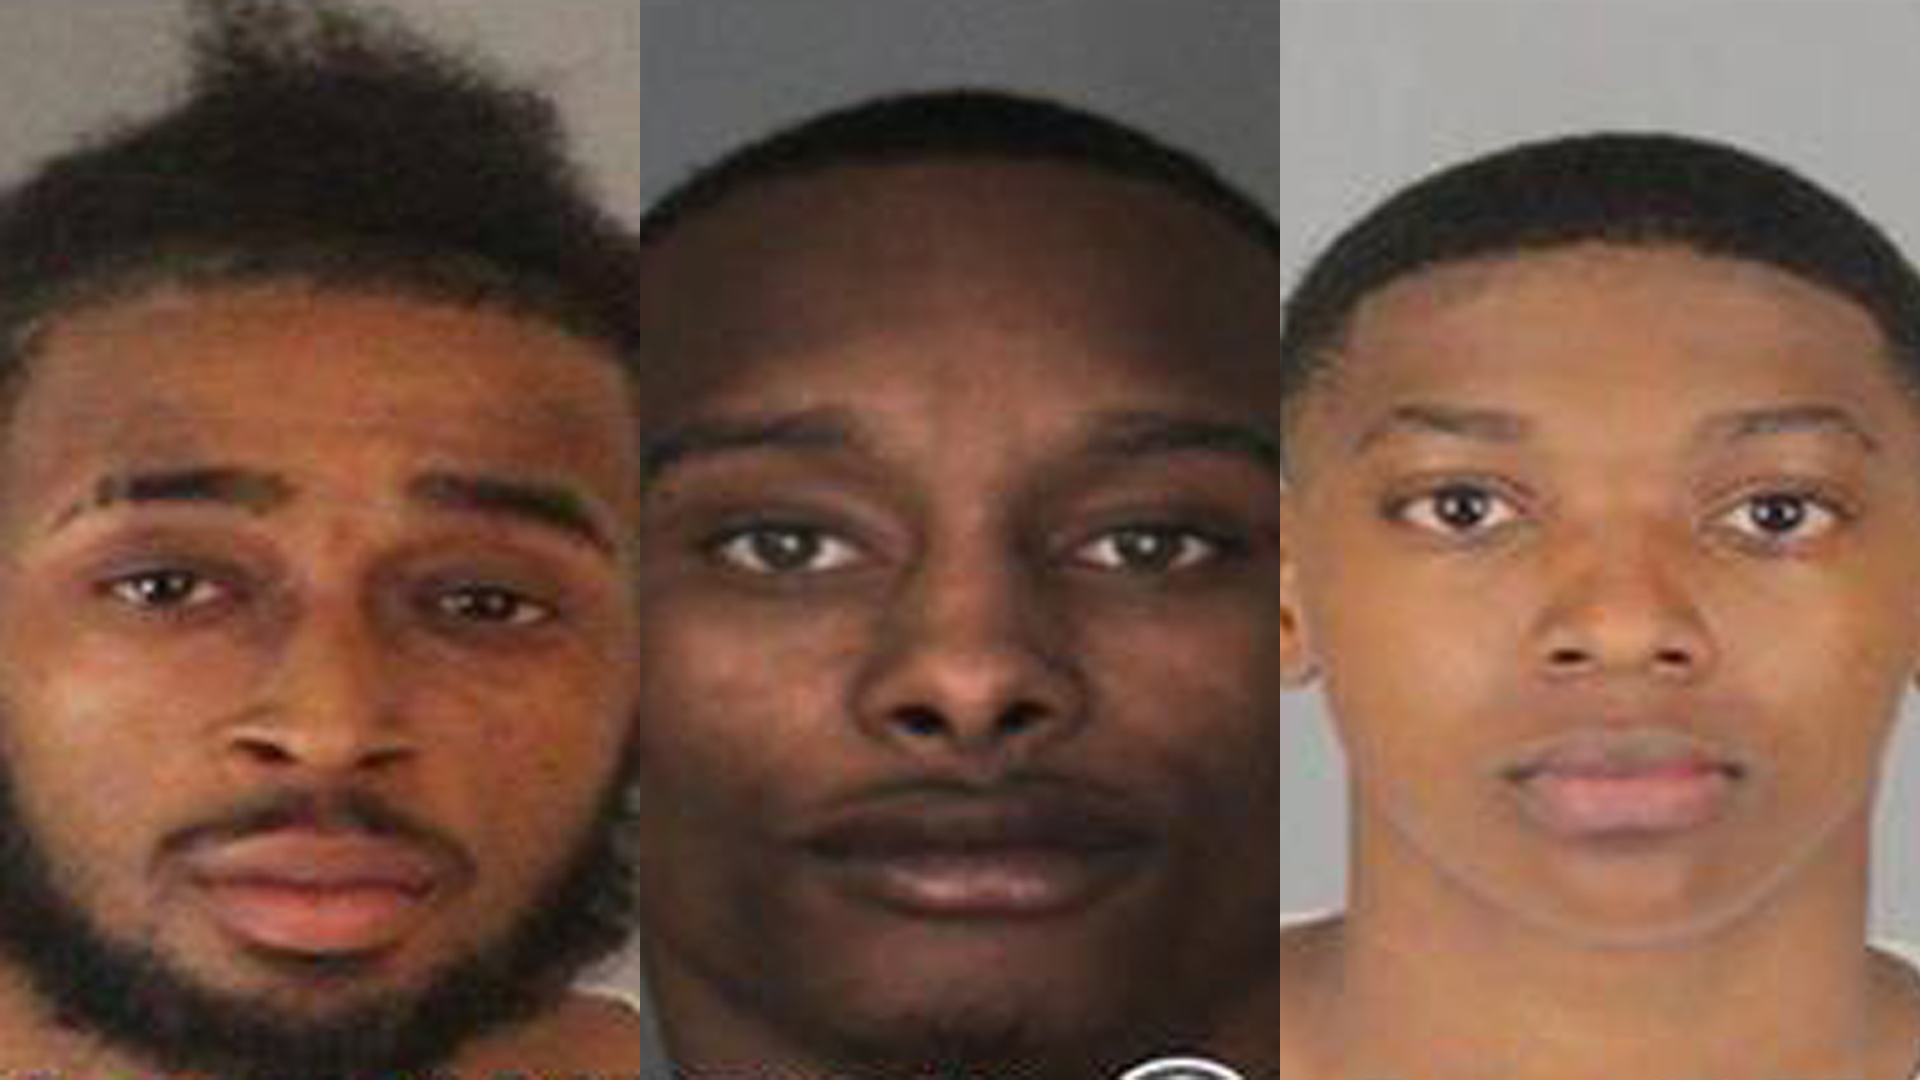 From left: Dashon Raymond White, 24; Daeon Raishawn Cox, 19; and Jada Shardae Allen, 18, are seen in photos released by Riverside police on Dec. 14, 2018.